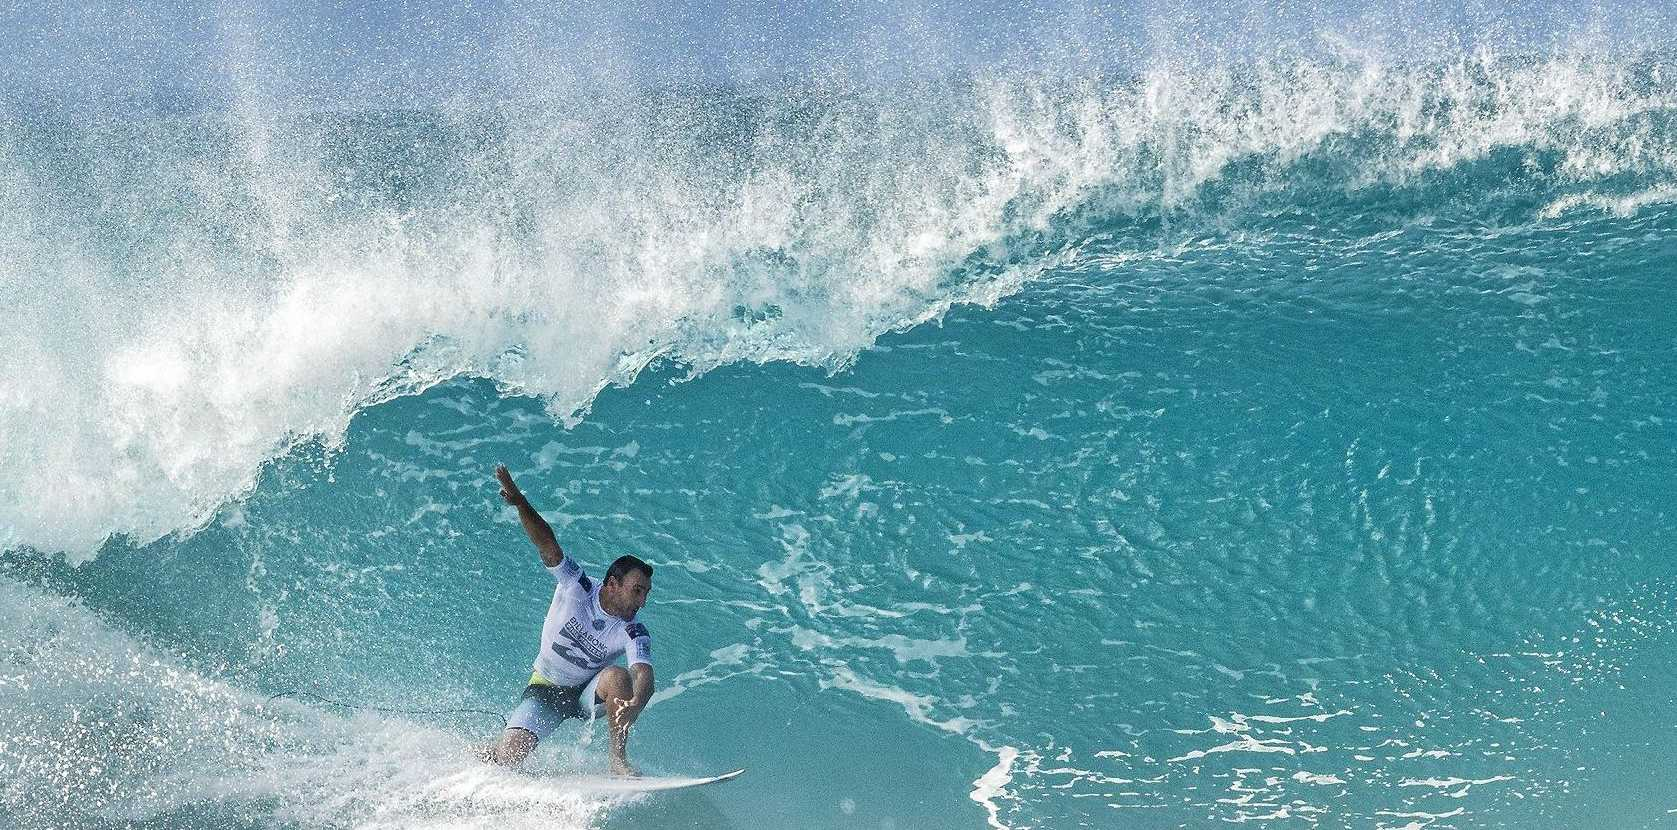 IN THE PIPE: Joel Parkinson at the Billabong Pipe Masters at Pipeline, Oahu, Hawaii.